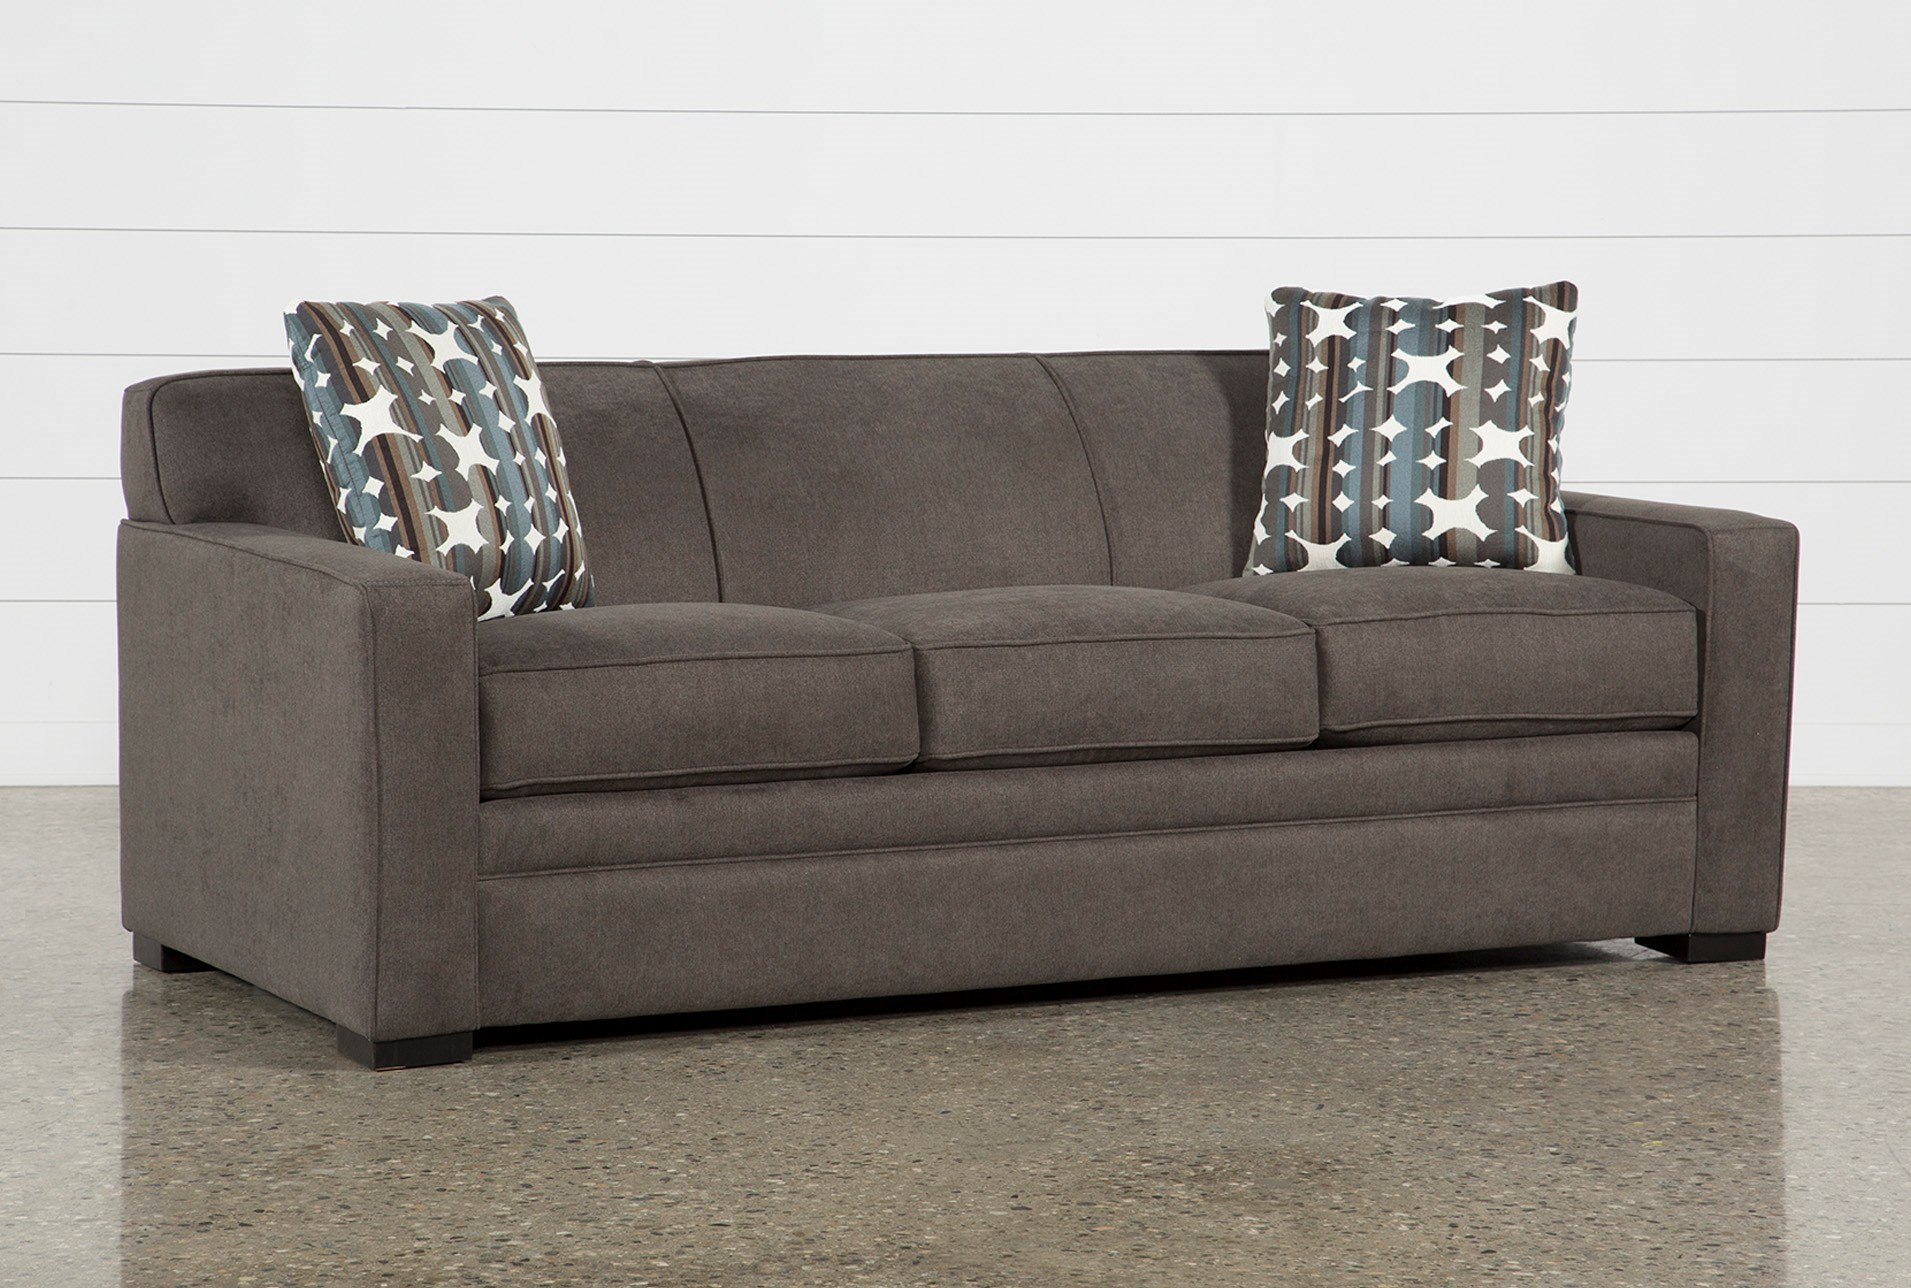 Ethan ii memory foam queen sleeper qty 1 has been successfully added to your cart